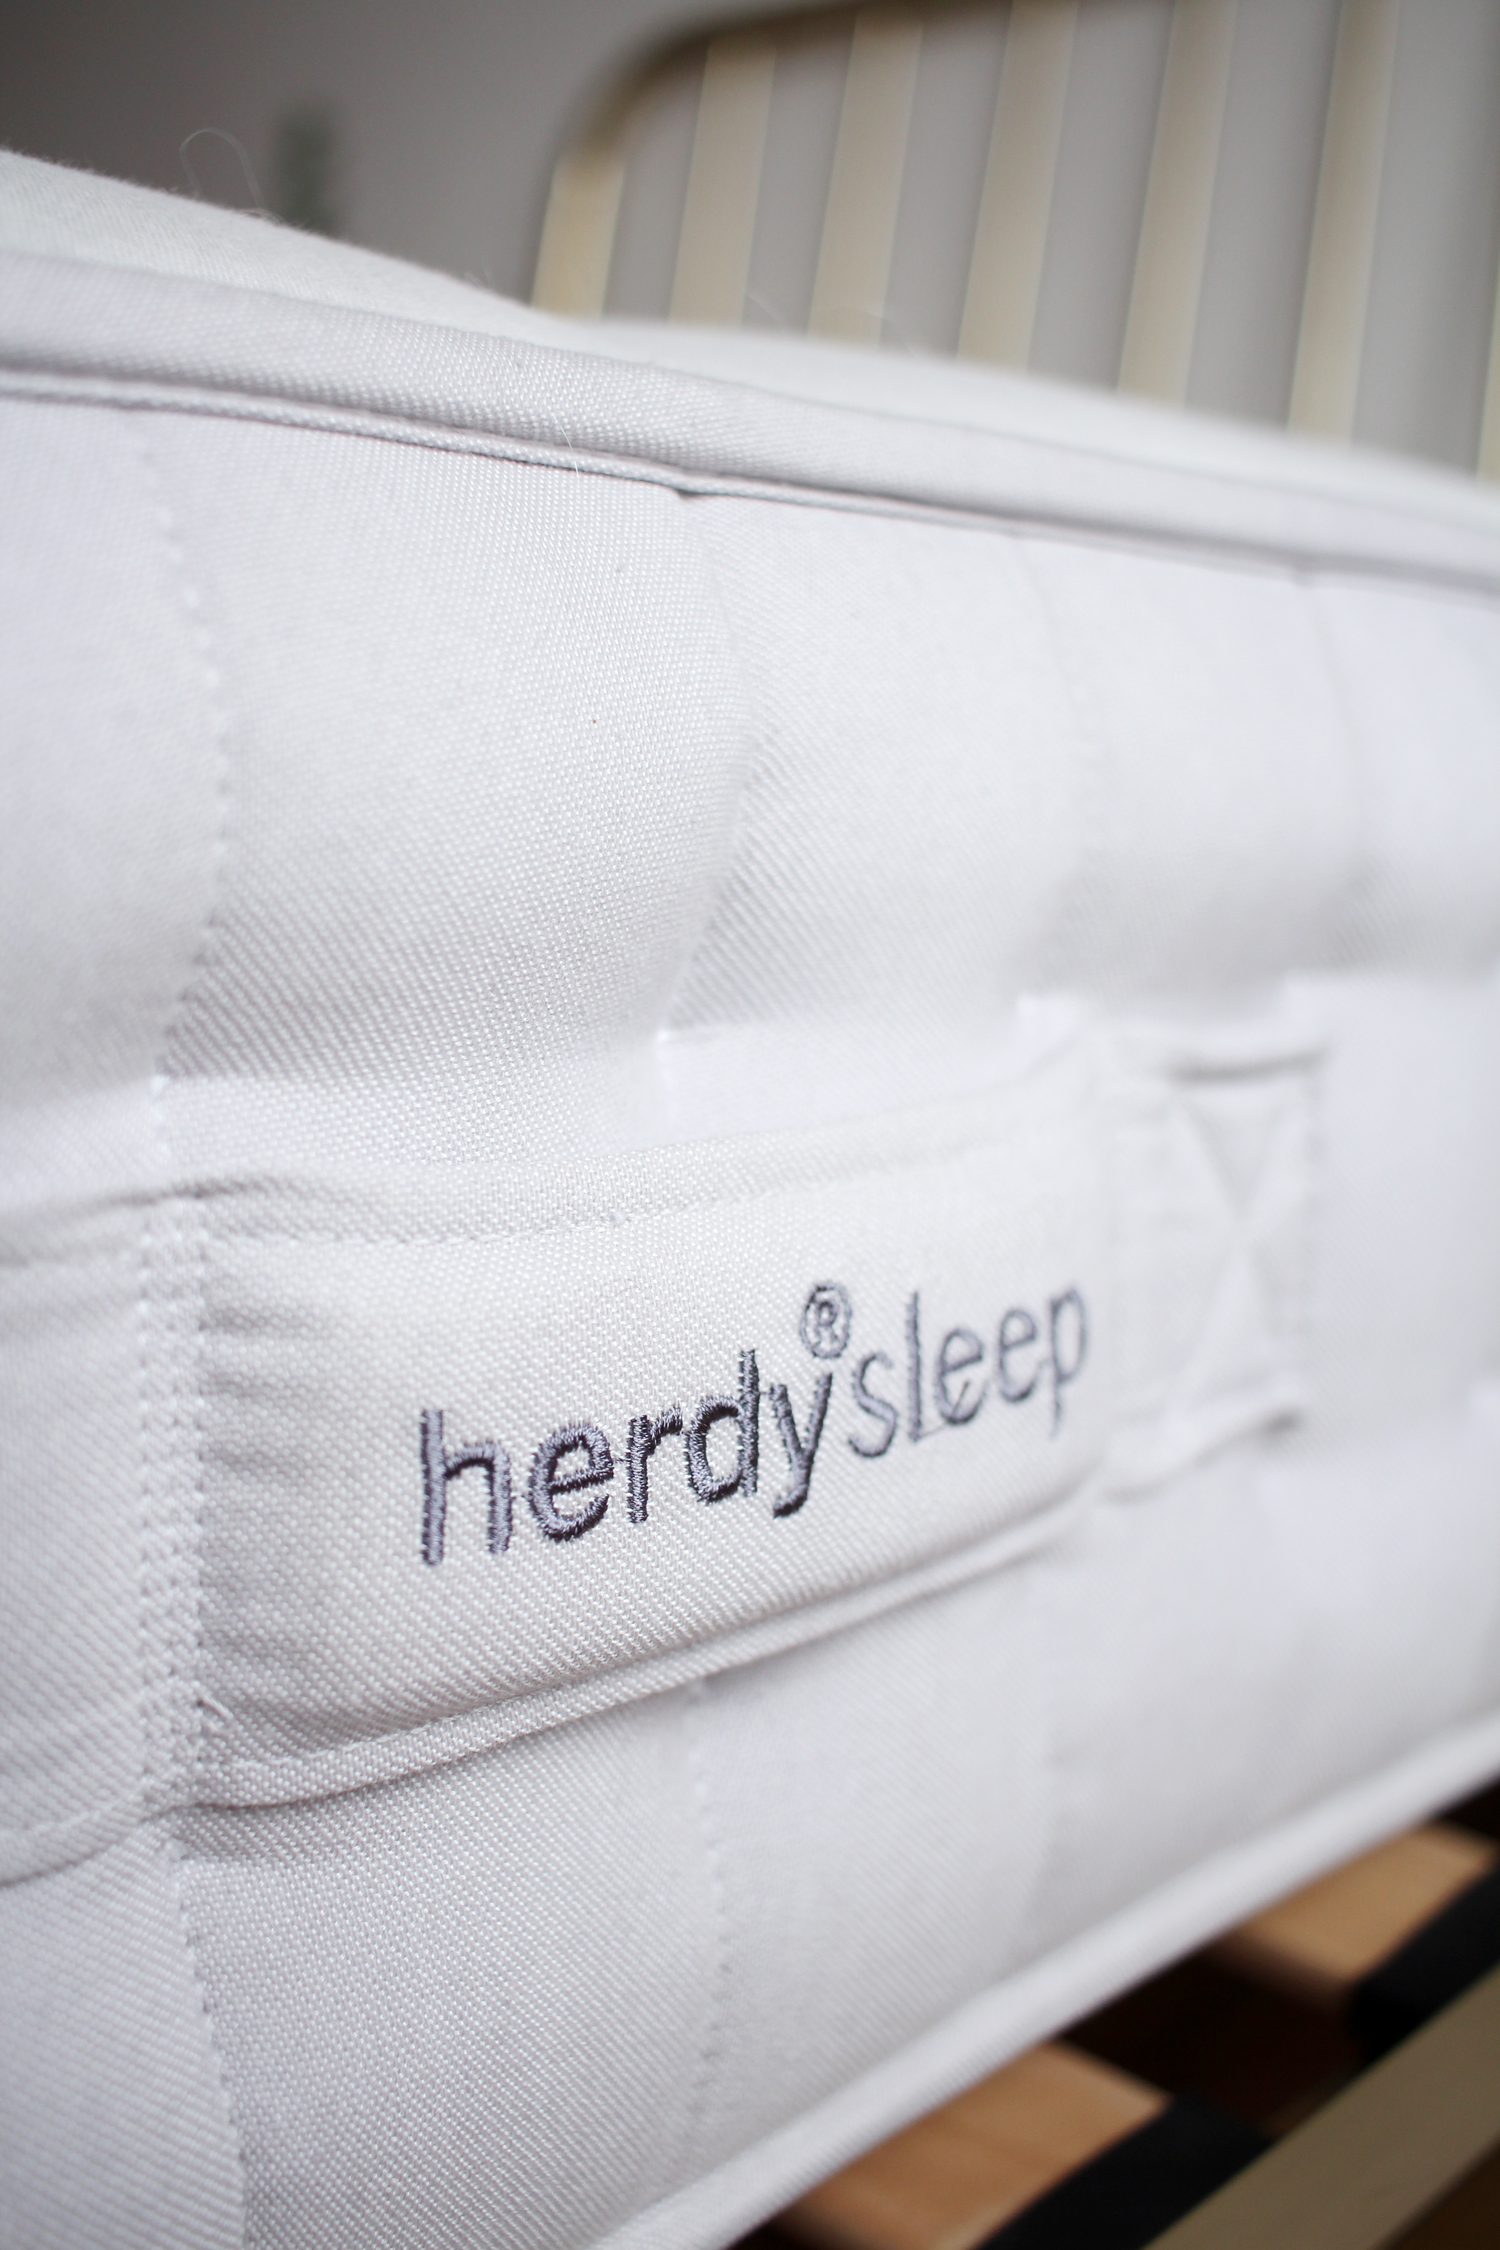 herdy-sleep-mattress-review-bedroom-interiors-blog-2